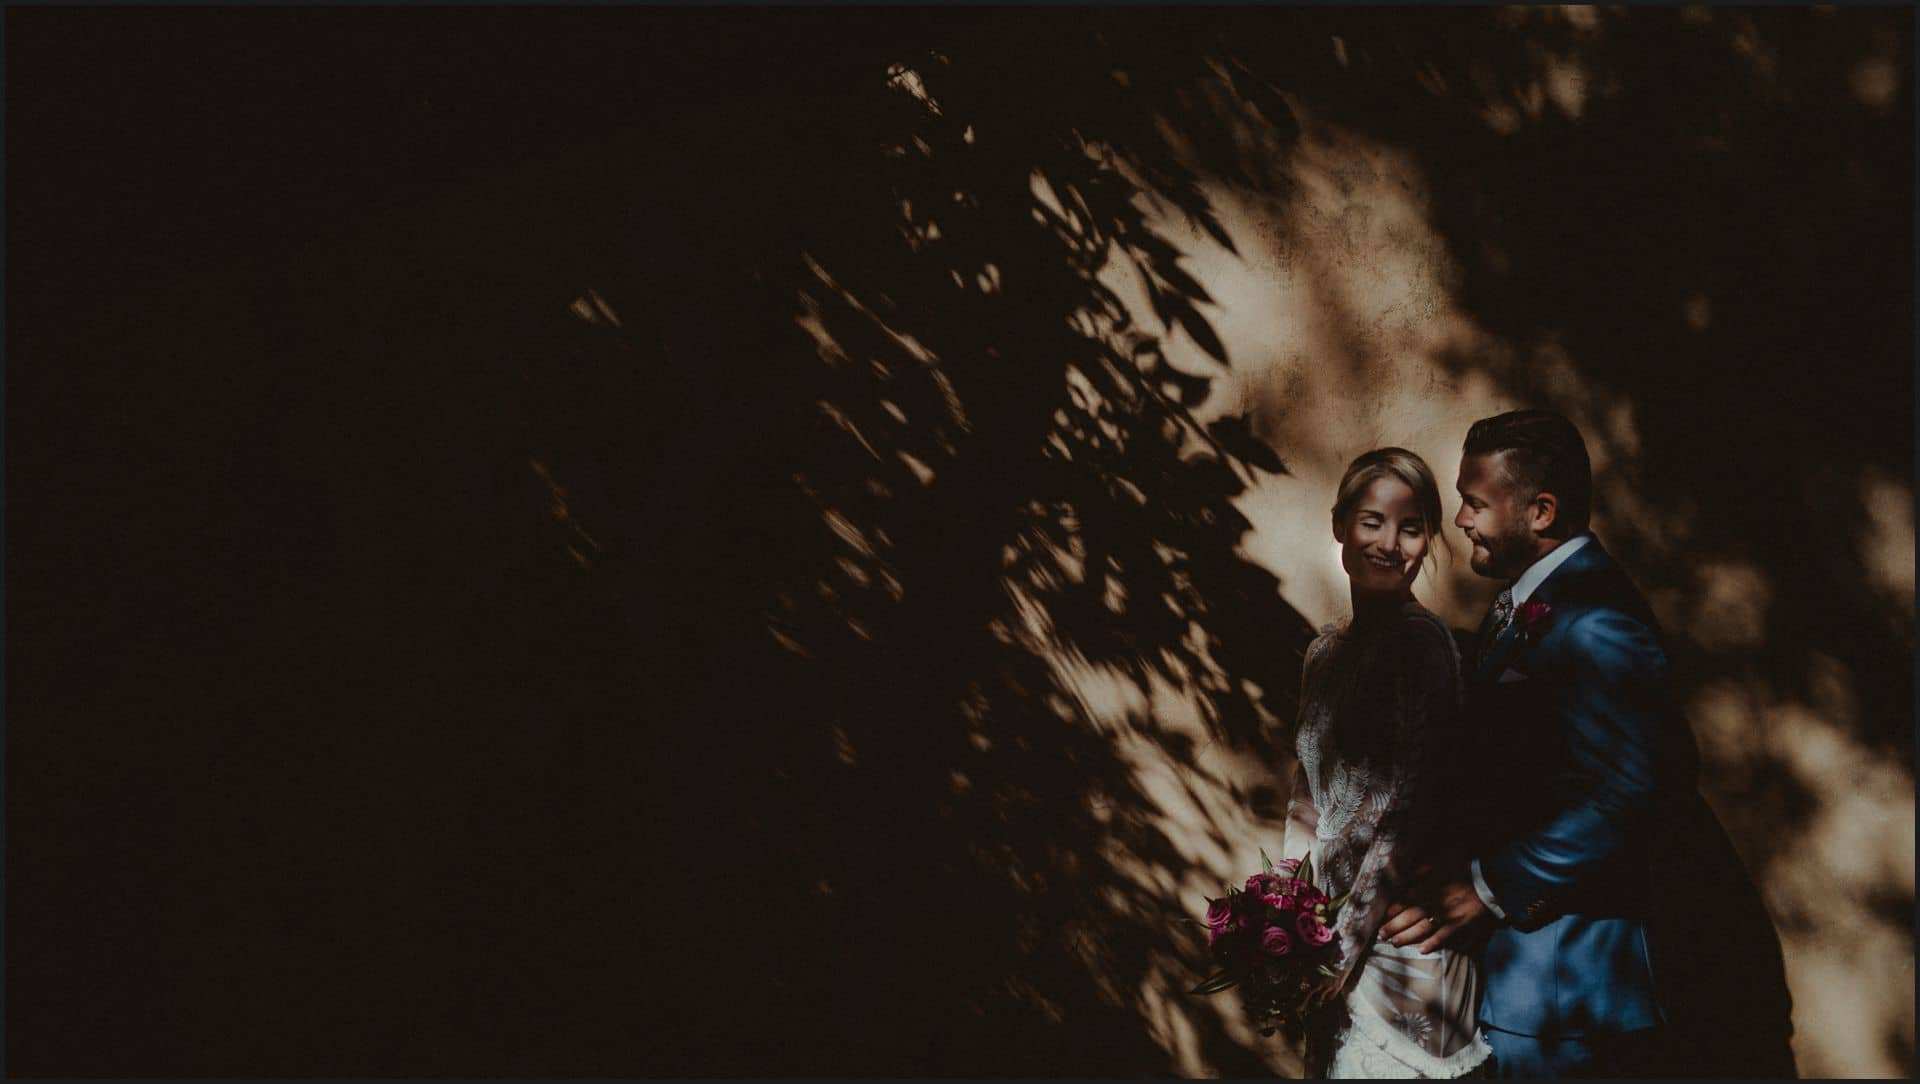 wedding, tuscany, villa medicea di lilliano, elopement wedding, bride, groom, light, creative portrait,